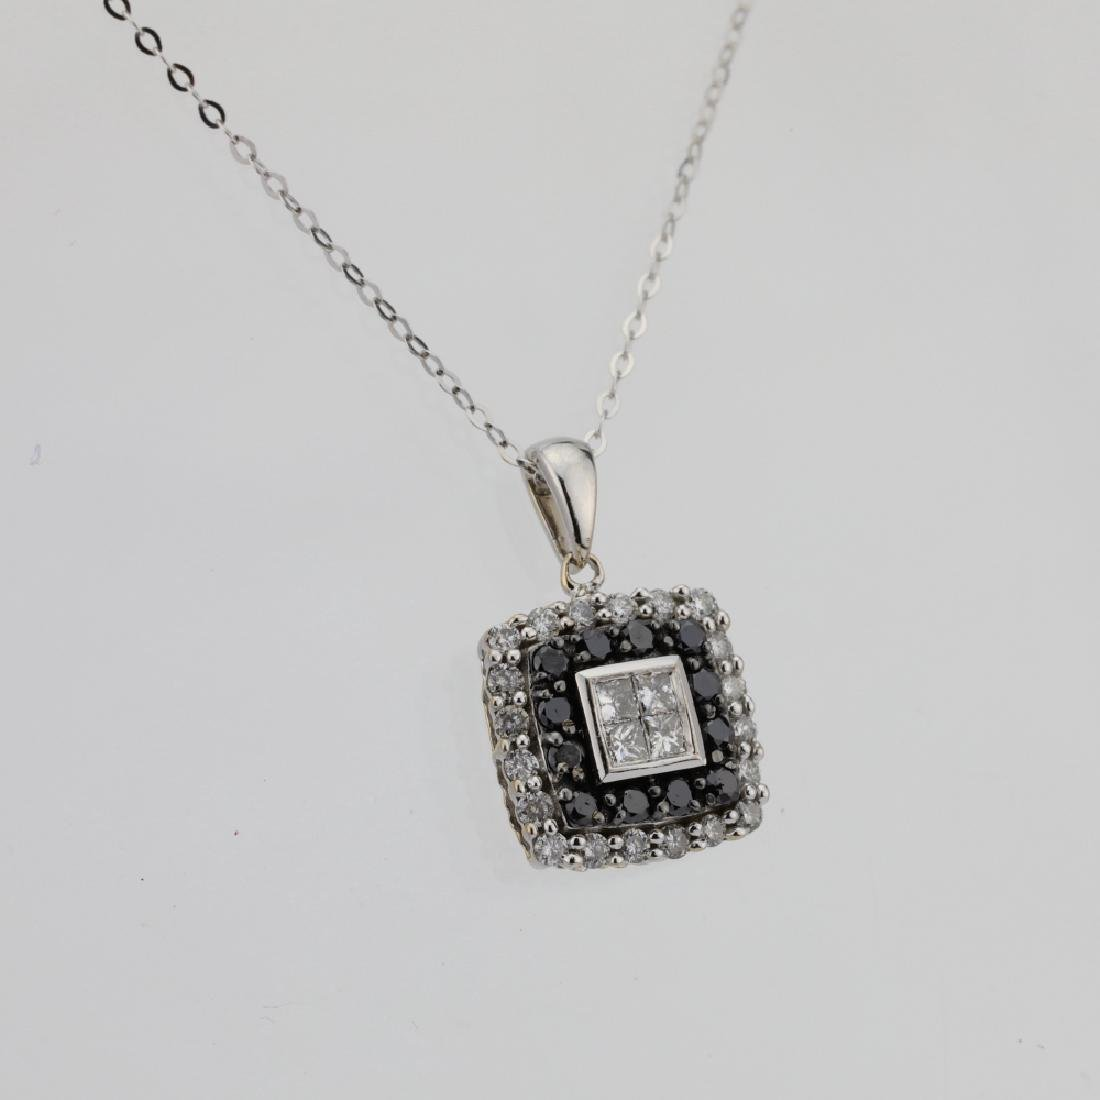 10K .85ctw Black/White Diamond Pendant W/14K Chain - 4